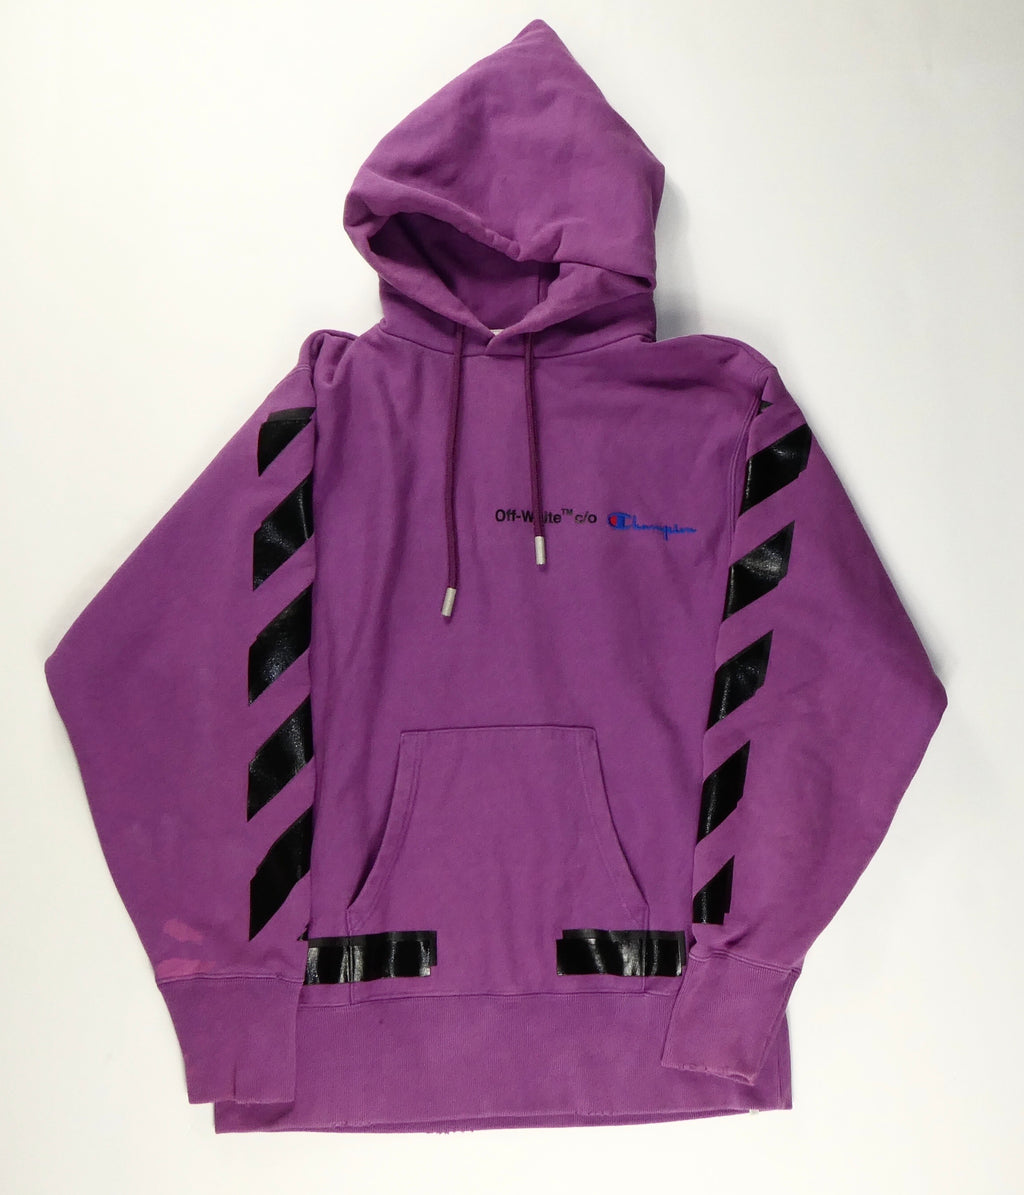 Off White Virgil Abloh x Champion Hoodie - Medium